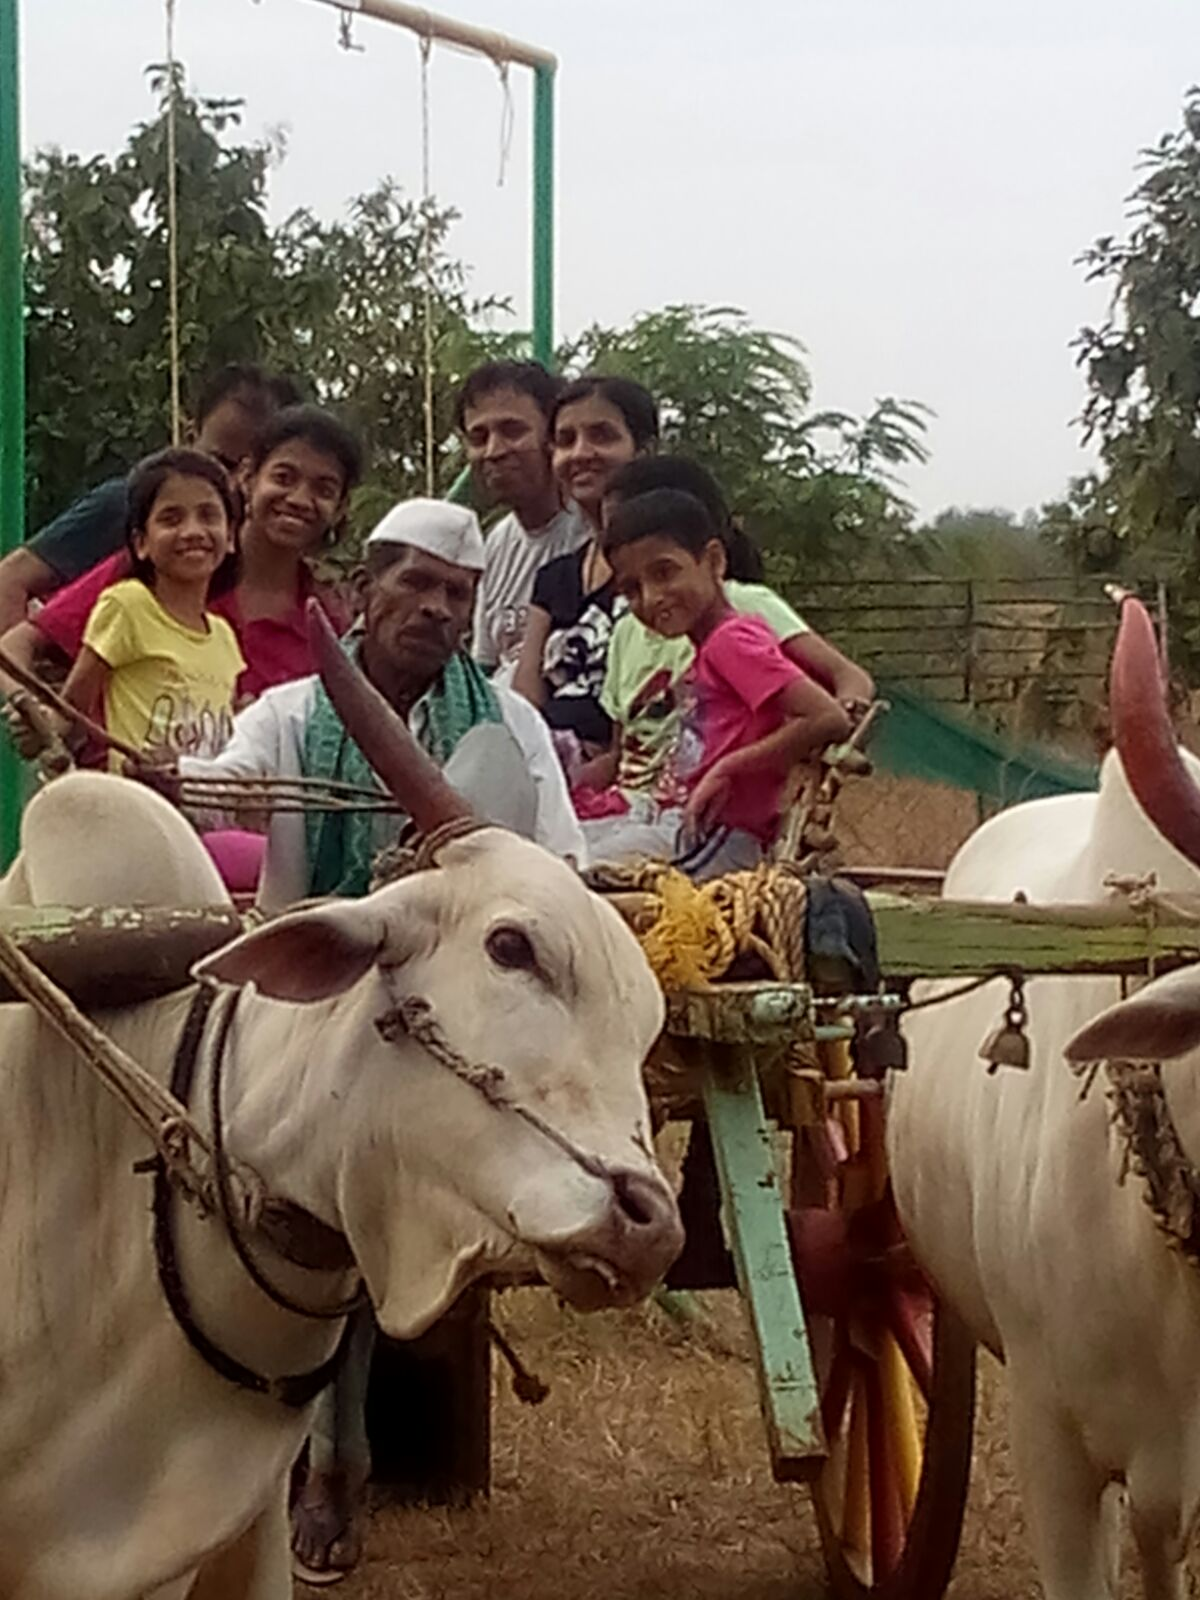 Bullock- Cart Ride in Dirghayu Farms